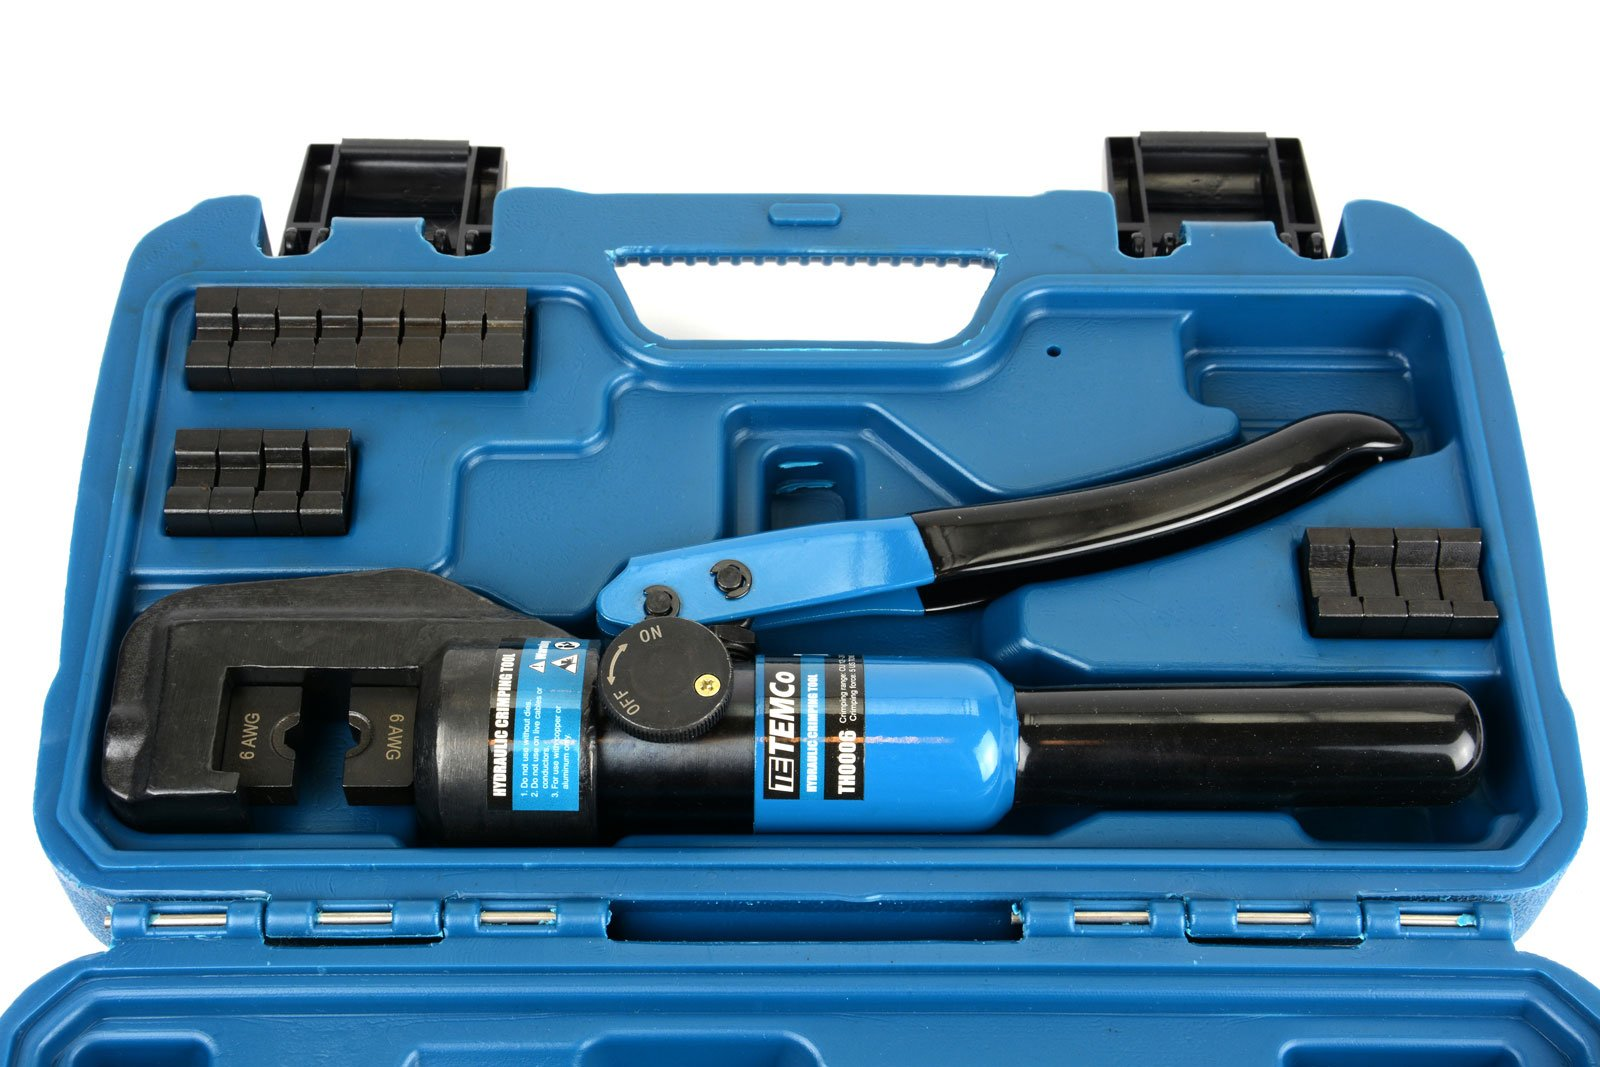 Temco Hydraulic Cable Lug Crimper TH0006-5 US TON 12 AWG to 00 (2/0) Electrical Terminal Cable Wire Tool Kit 5 YEAR WARRANTY by Temco (Image #7)